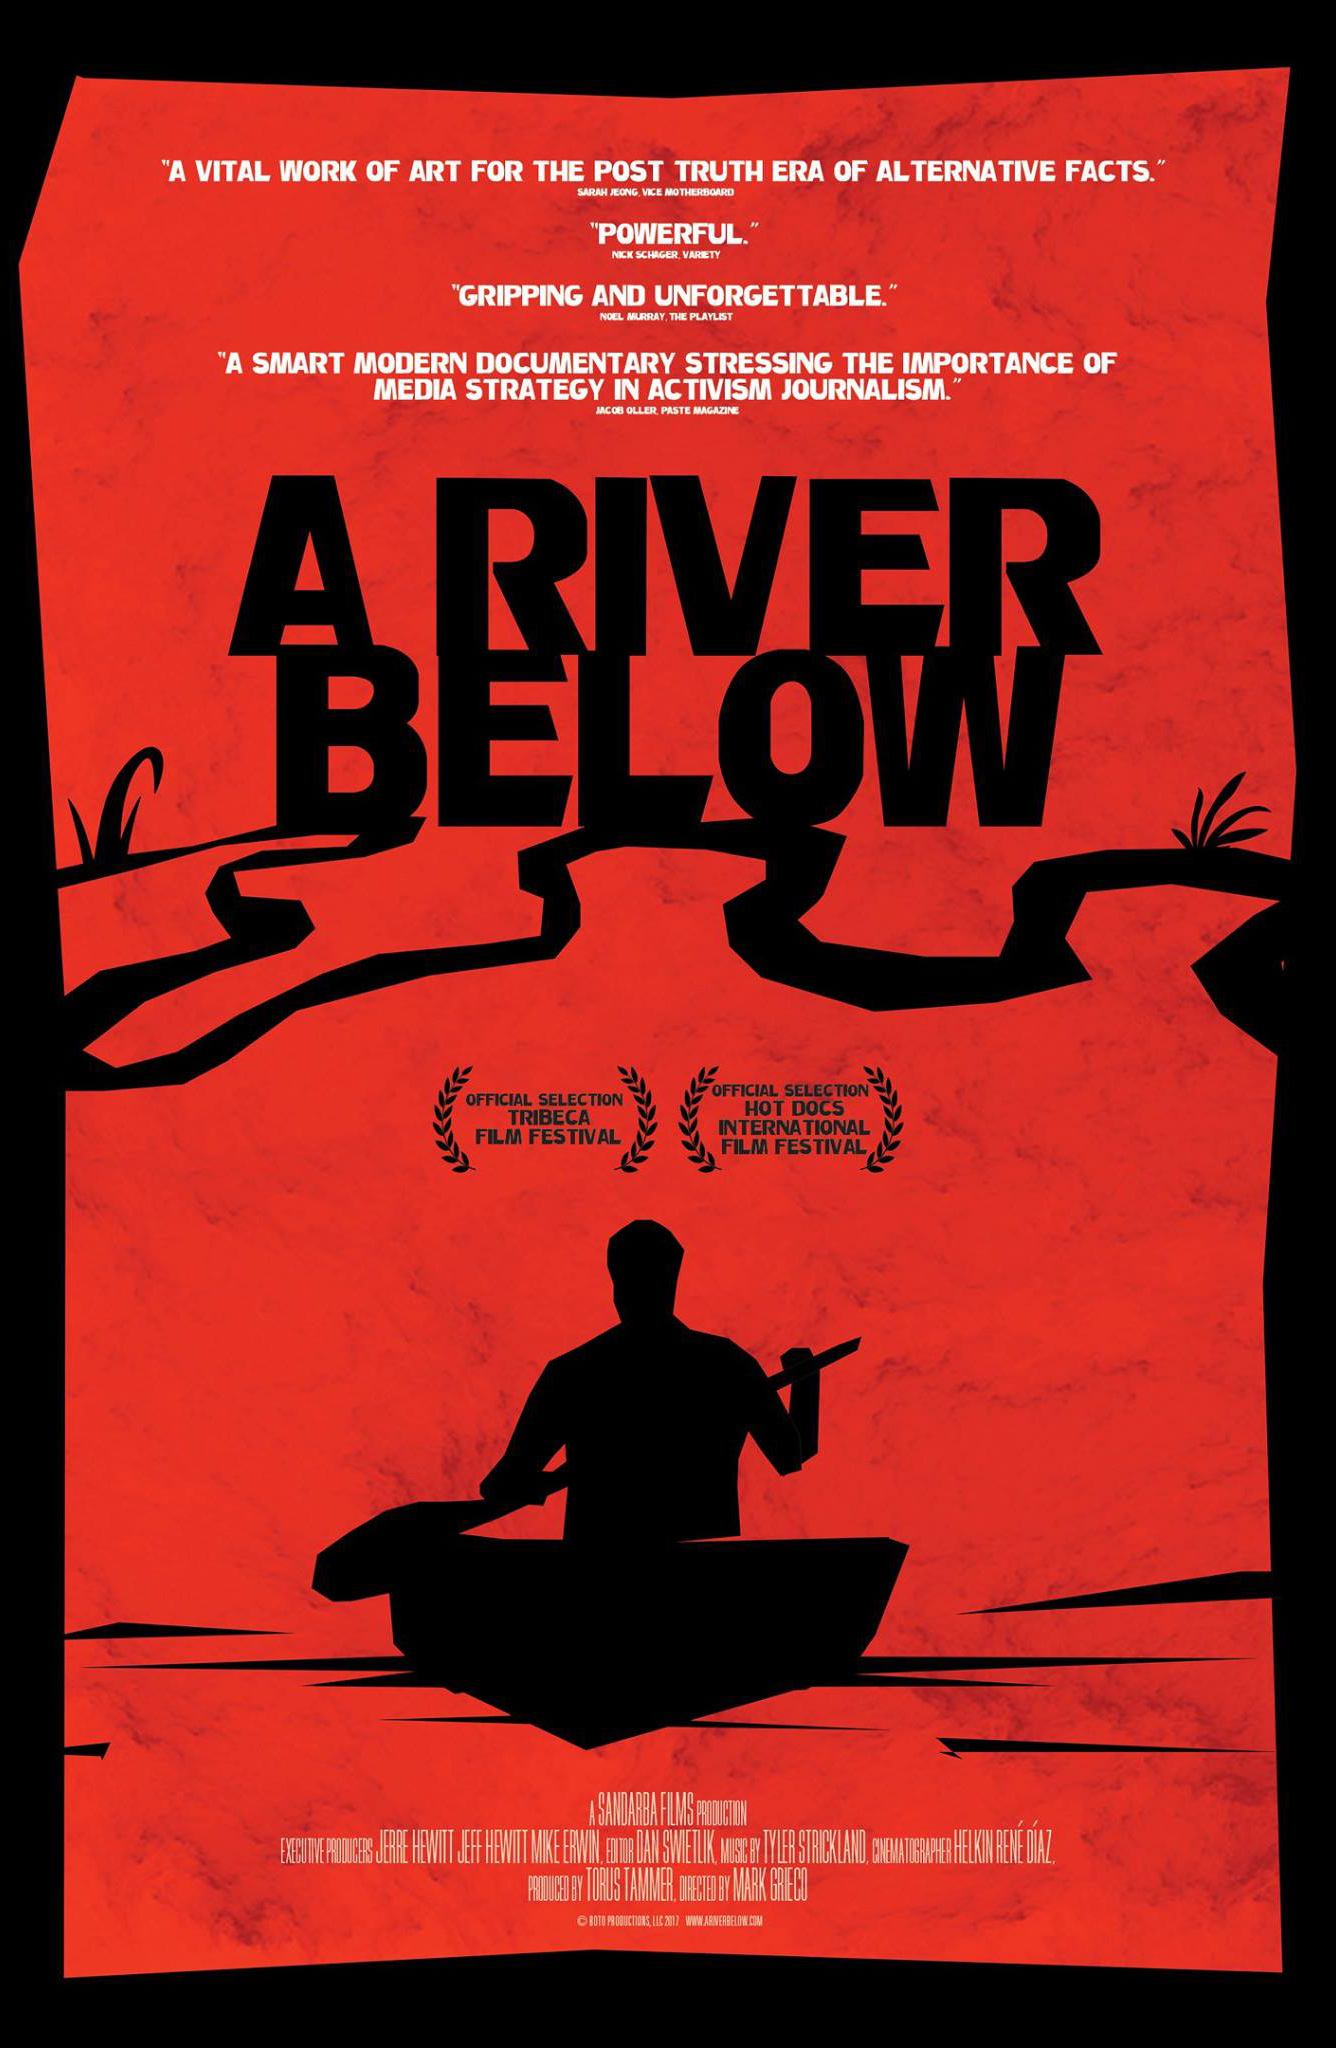 A River Below – Jan. 4th